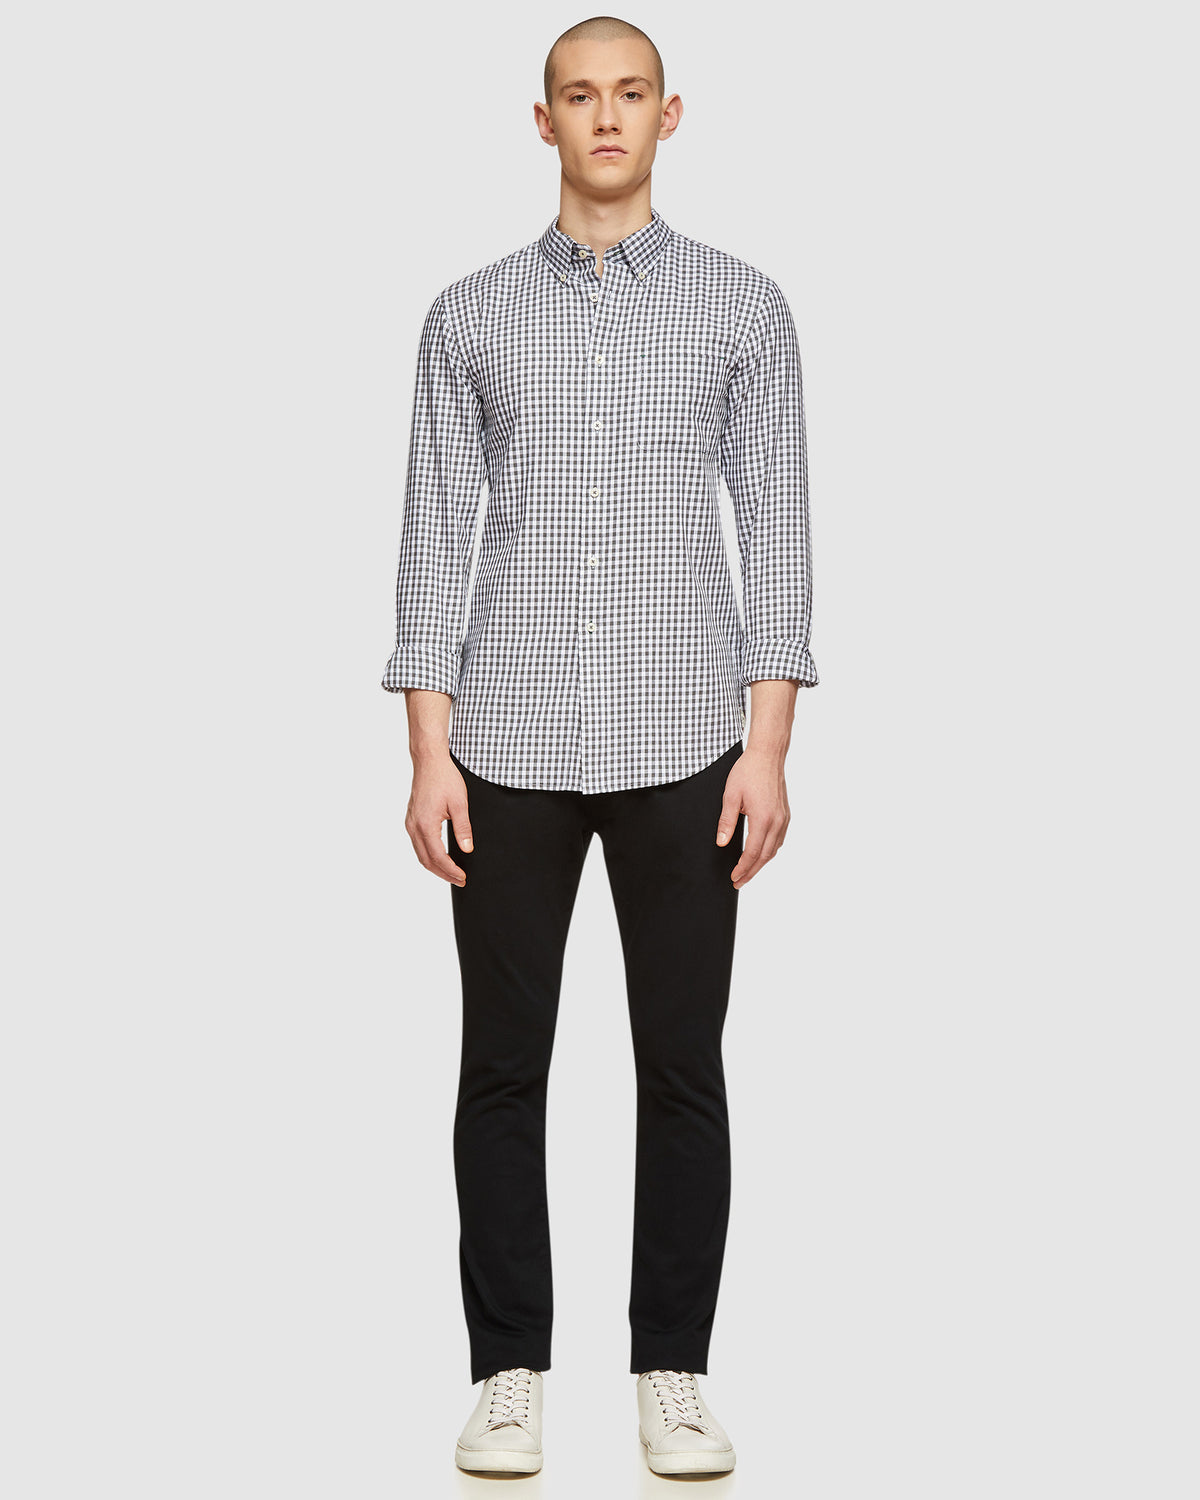 UXBRIDGE CHECKED SHIRT GREY